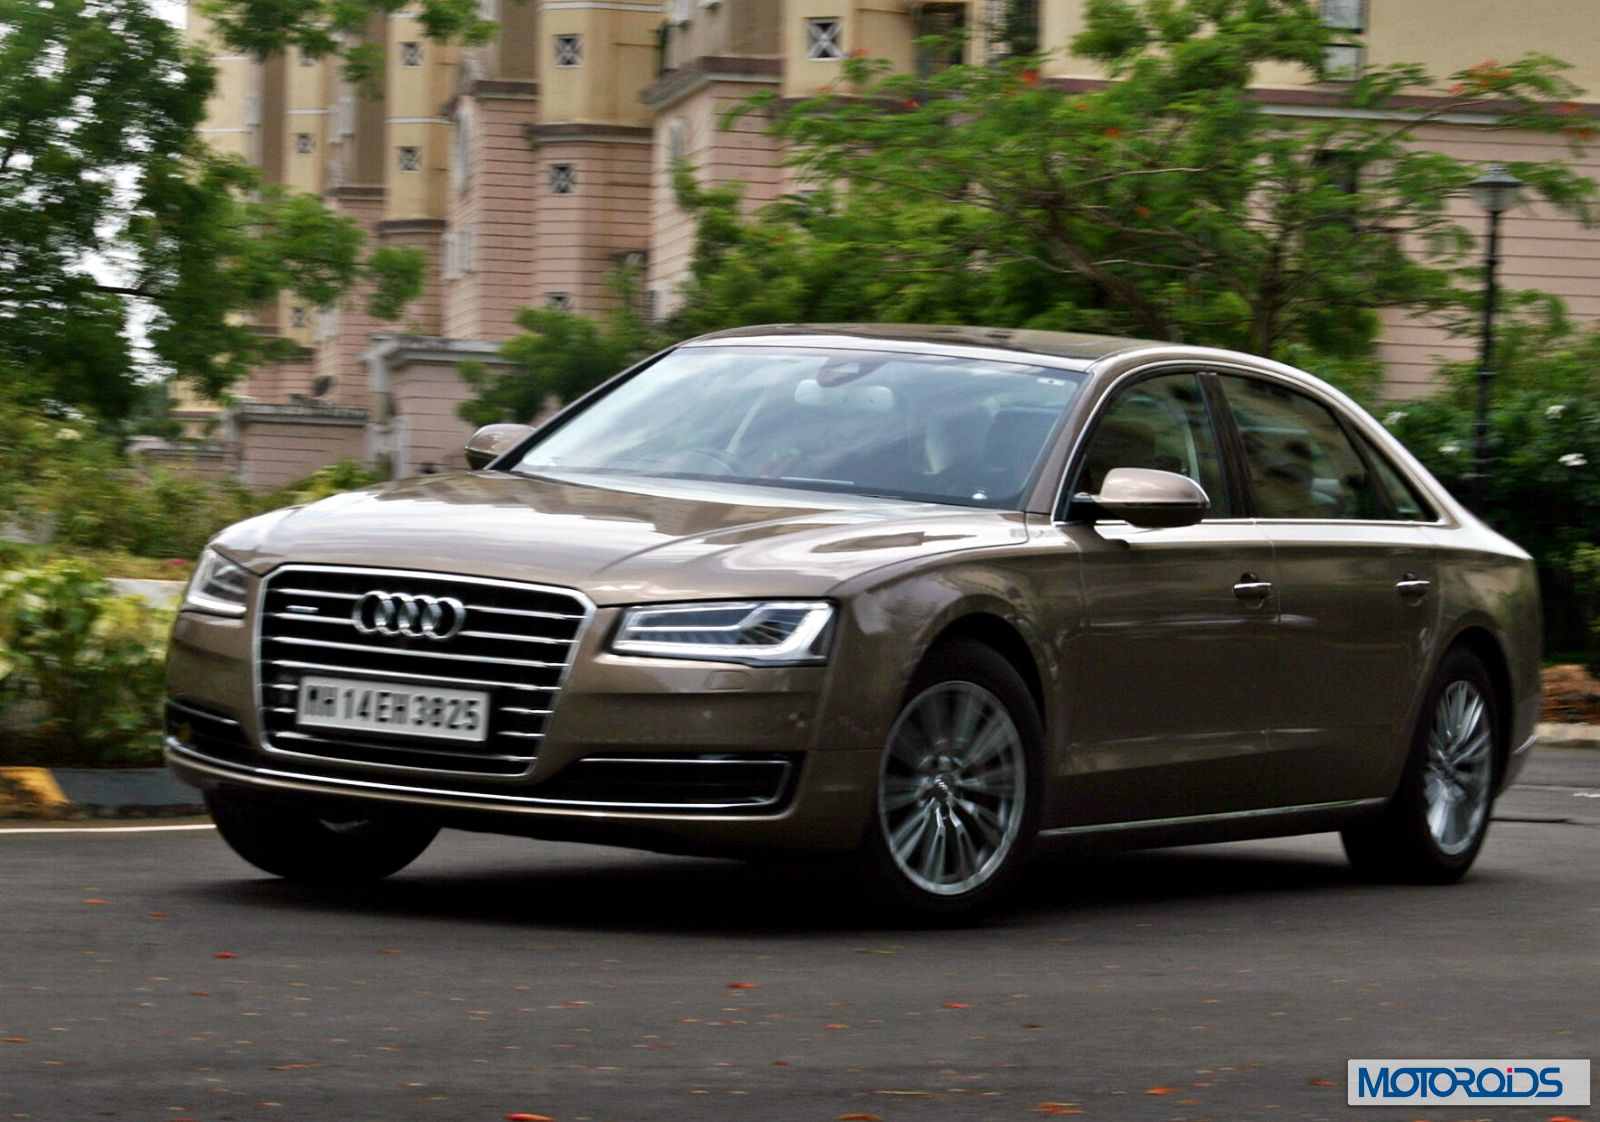 2014 audi a8l 3 0 tdi india review luxe life motoroids. Black Bedroom Furniture Sets. Home Design Ideas